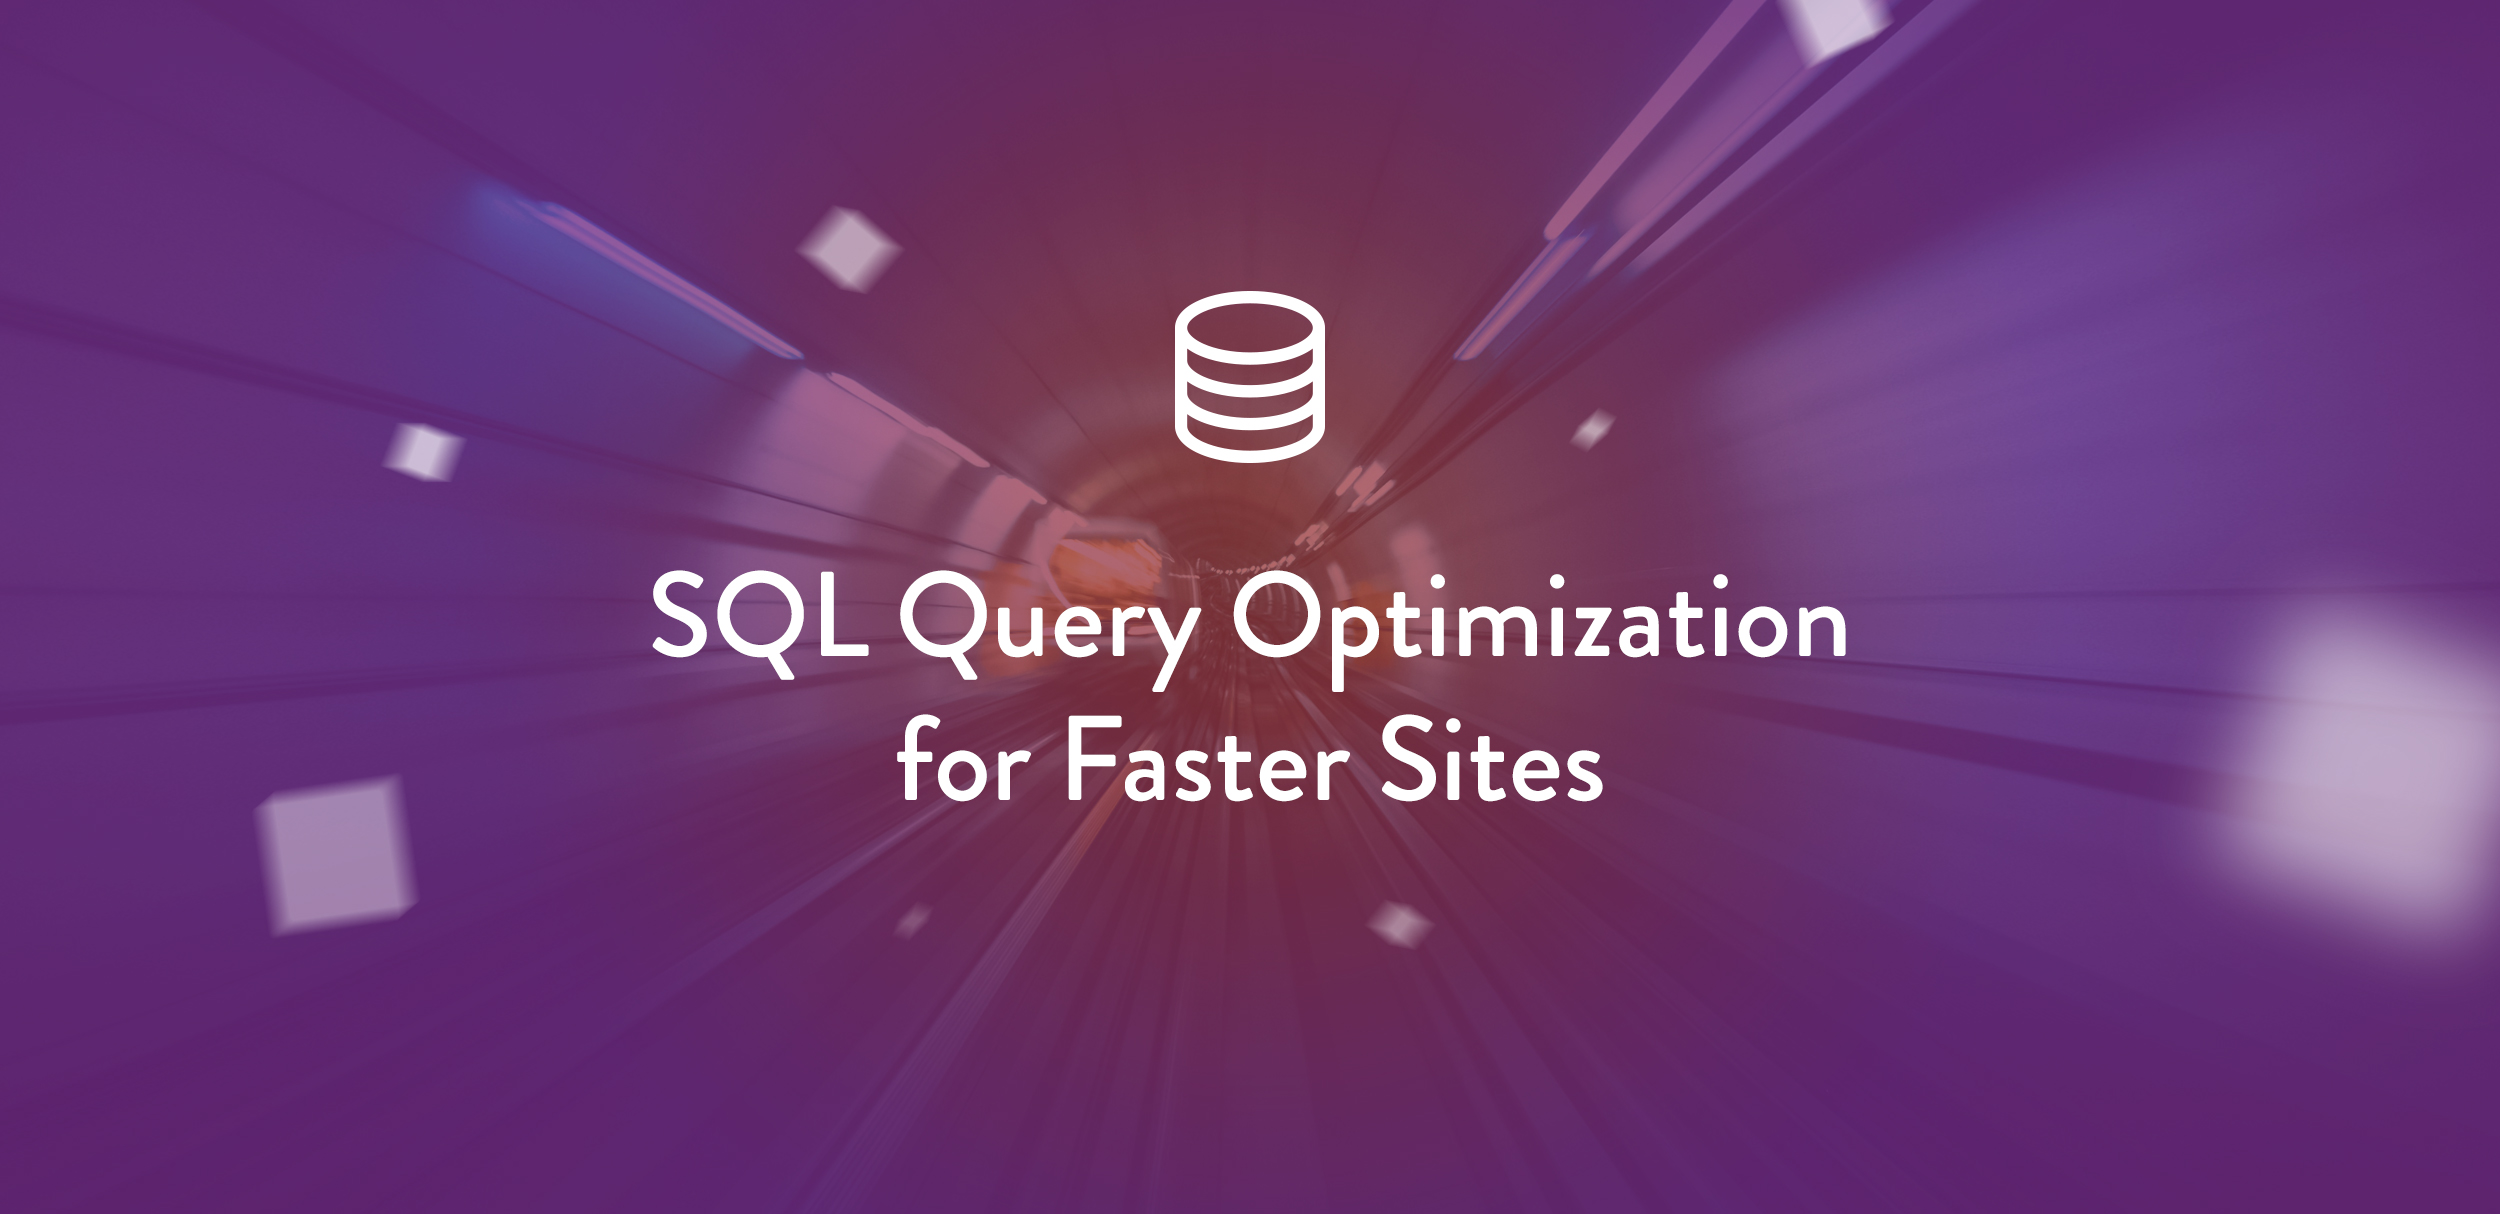 SQL Query Optimization for Faster Sites